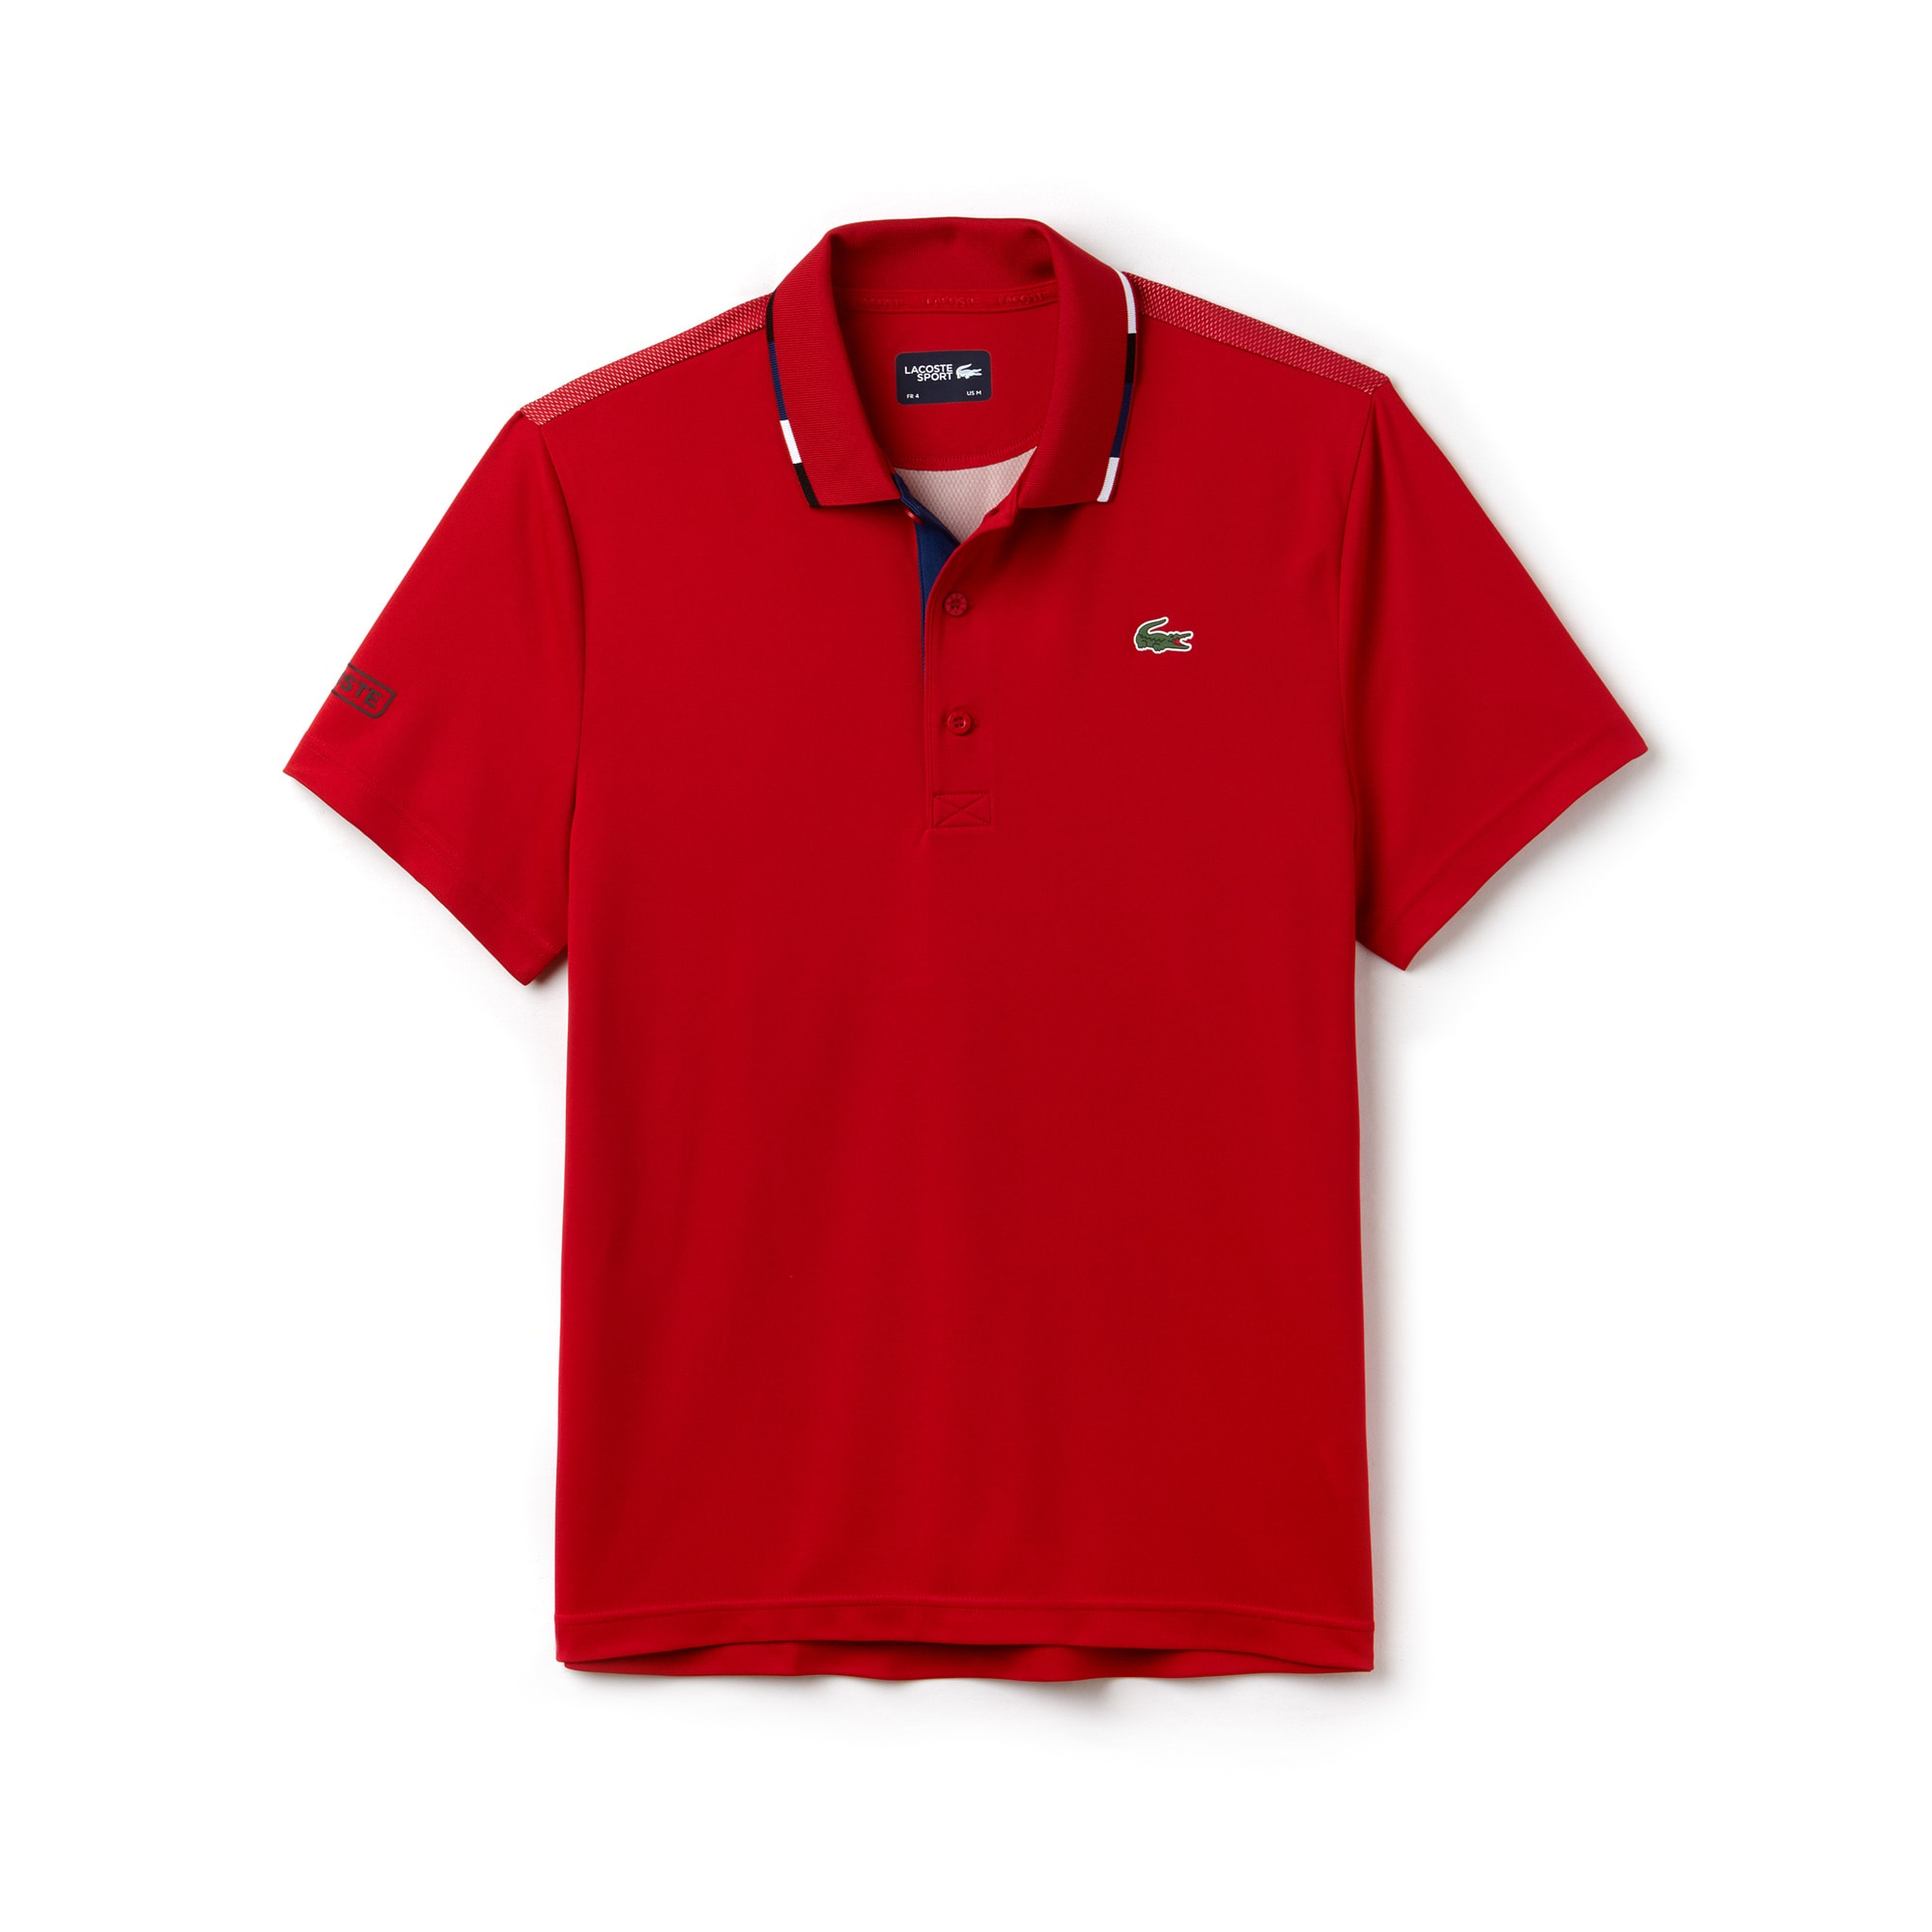 Men's SPORT Piped Piqué Tennis Polo